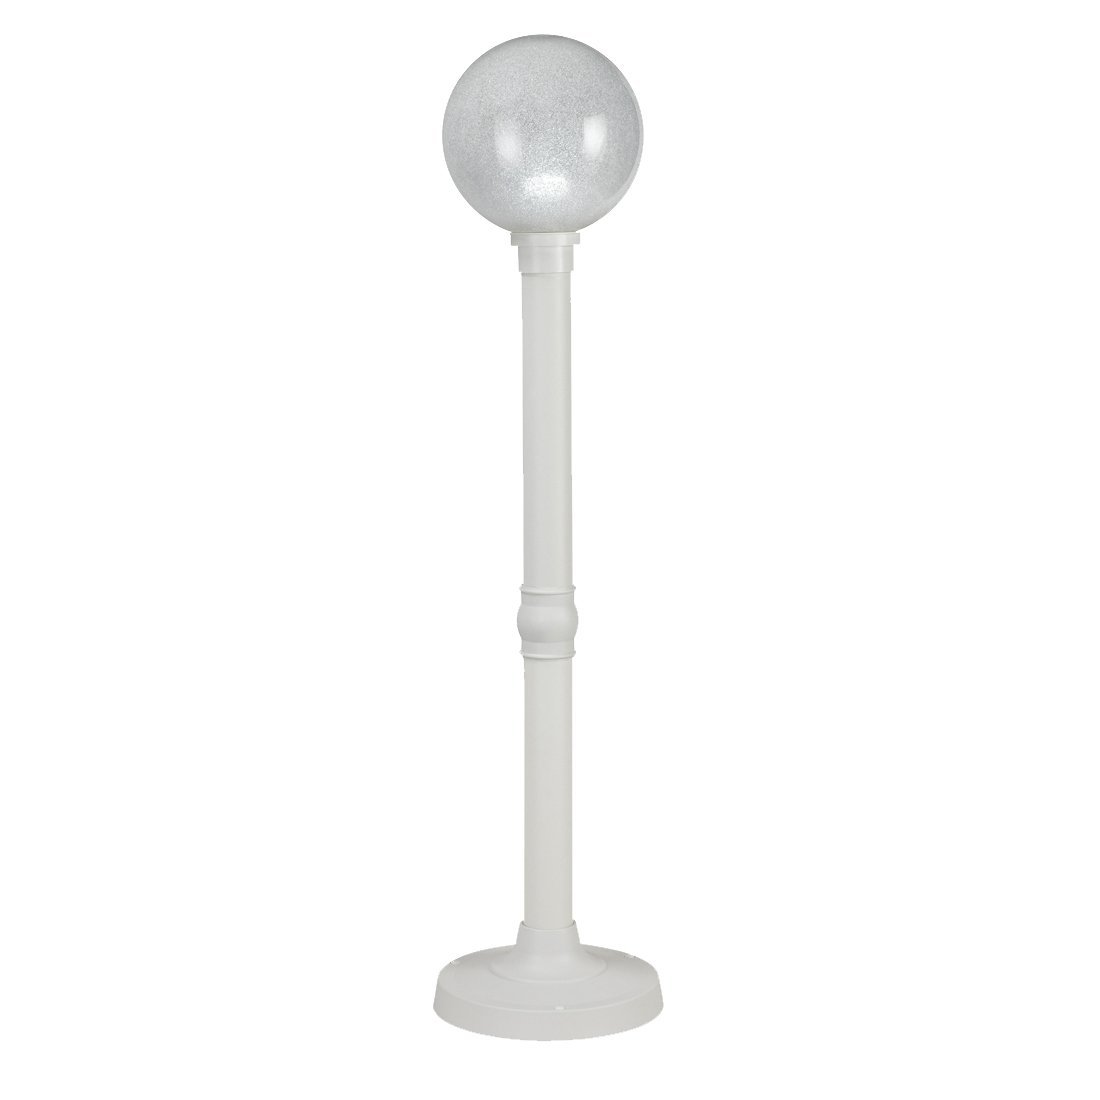 Moonlite LED Outdoor Floor Lamp